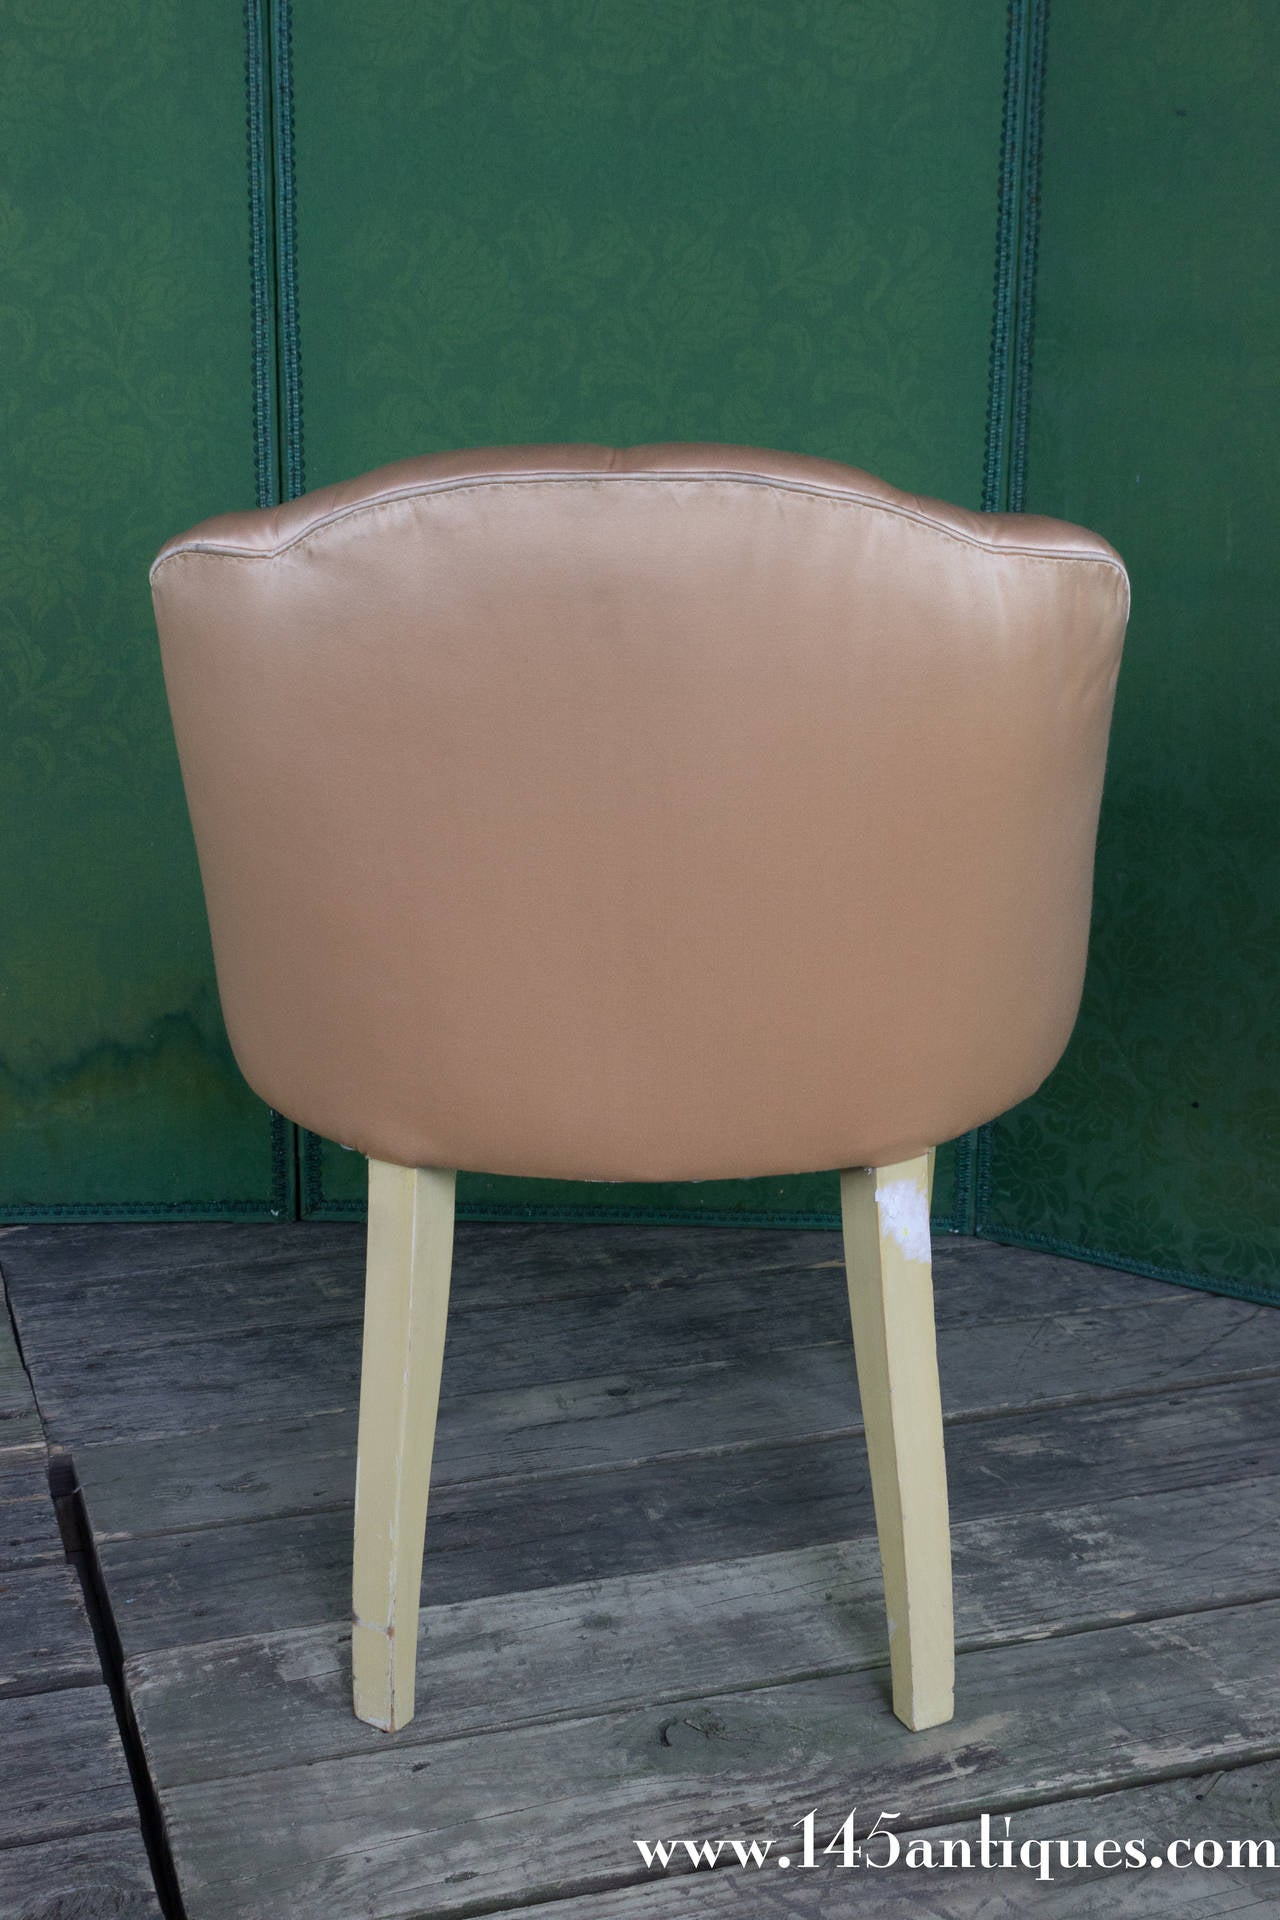 vanity chair with back bean bag covers canada 20th century french tufted stool at 1stdibs